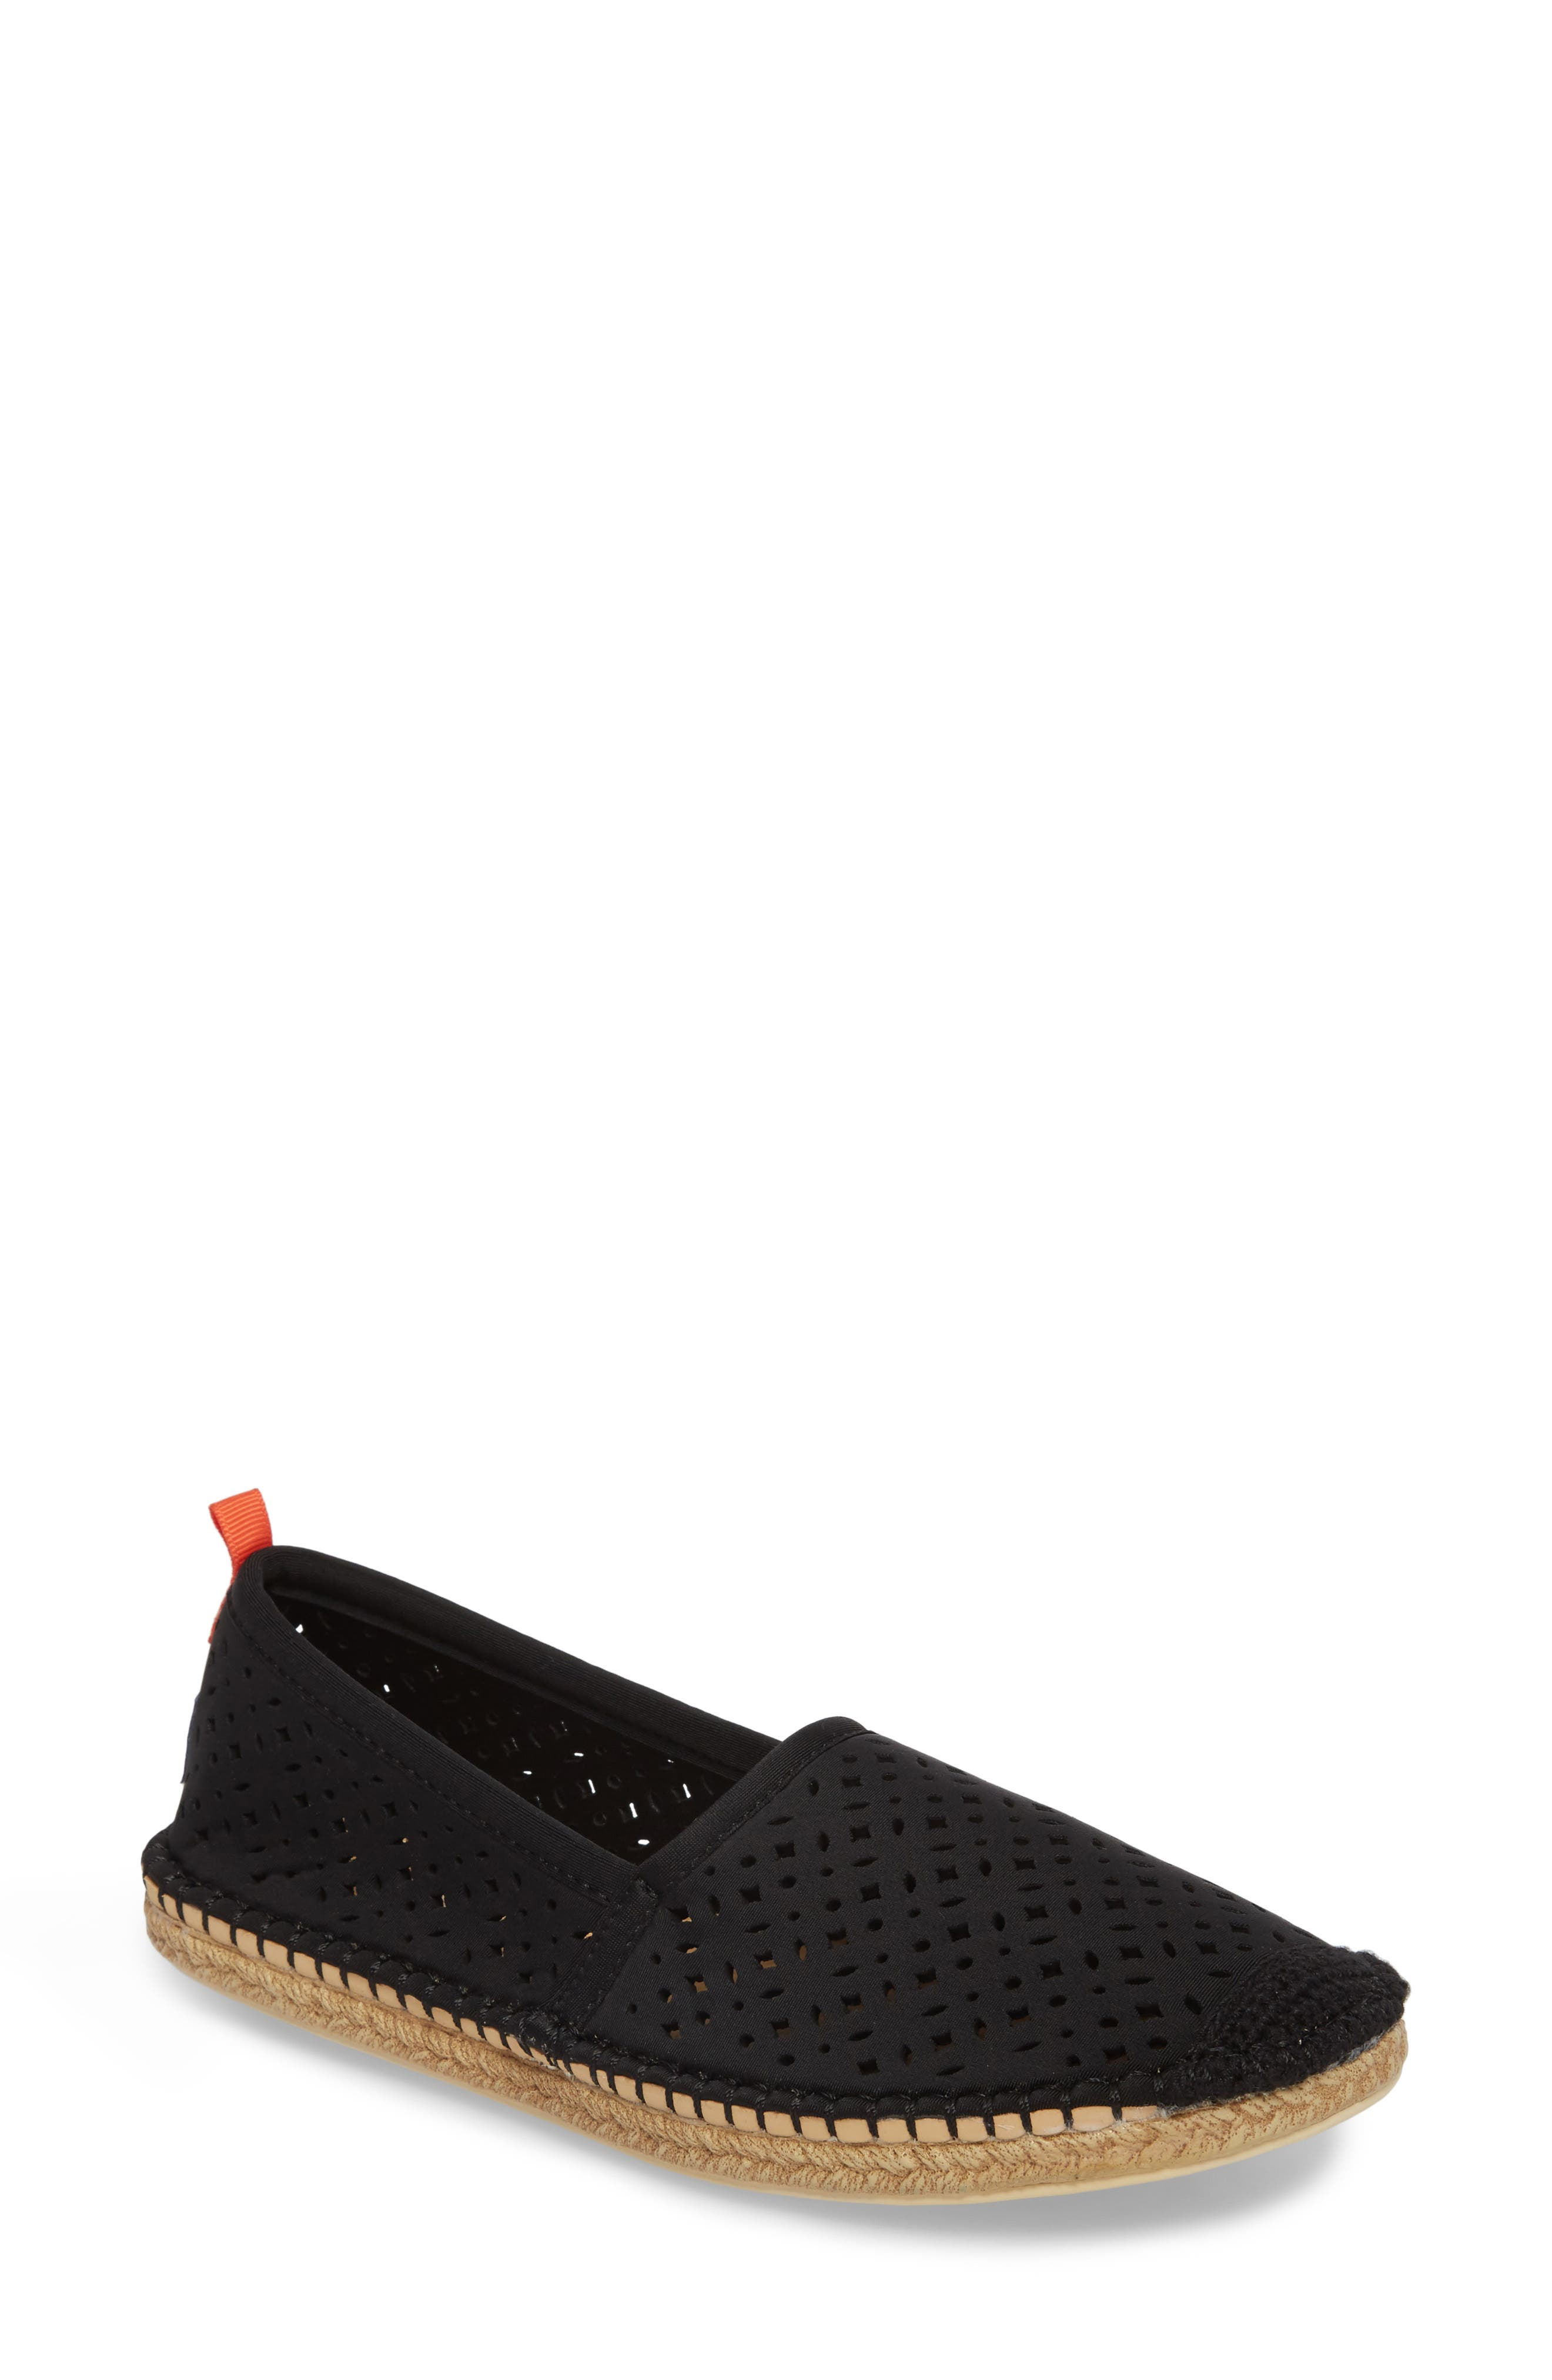 Sea Star Beachcomber Espadrille Sandal,                         Main,                         color, BLACK EYELET